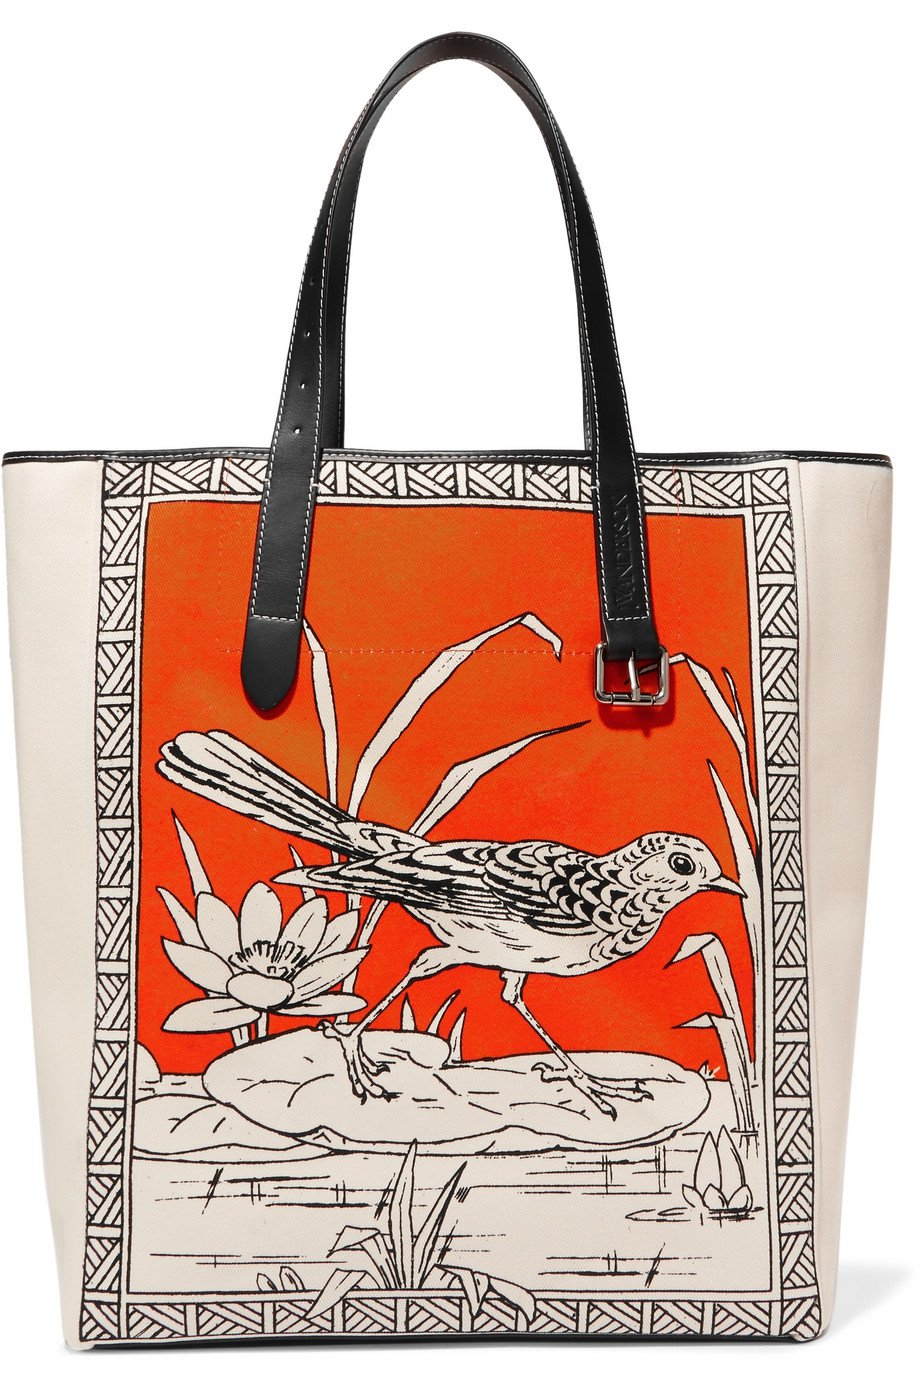 JW Anderson   Leather-trimmed printed canvas tote   NET-A-PORTER.COM